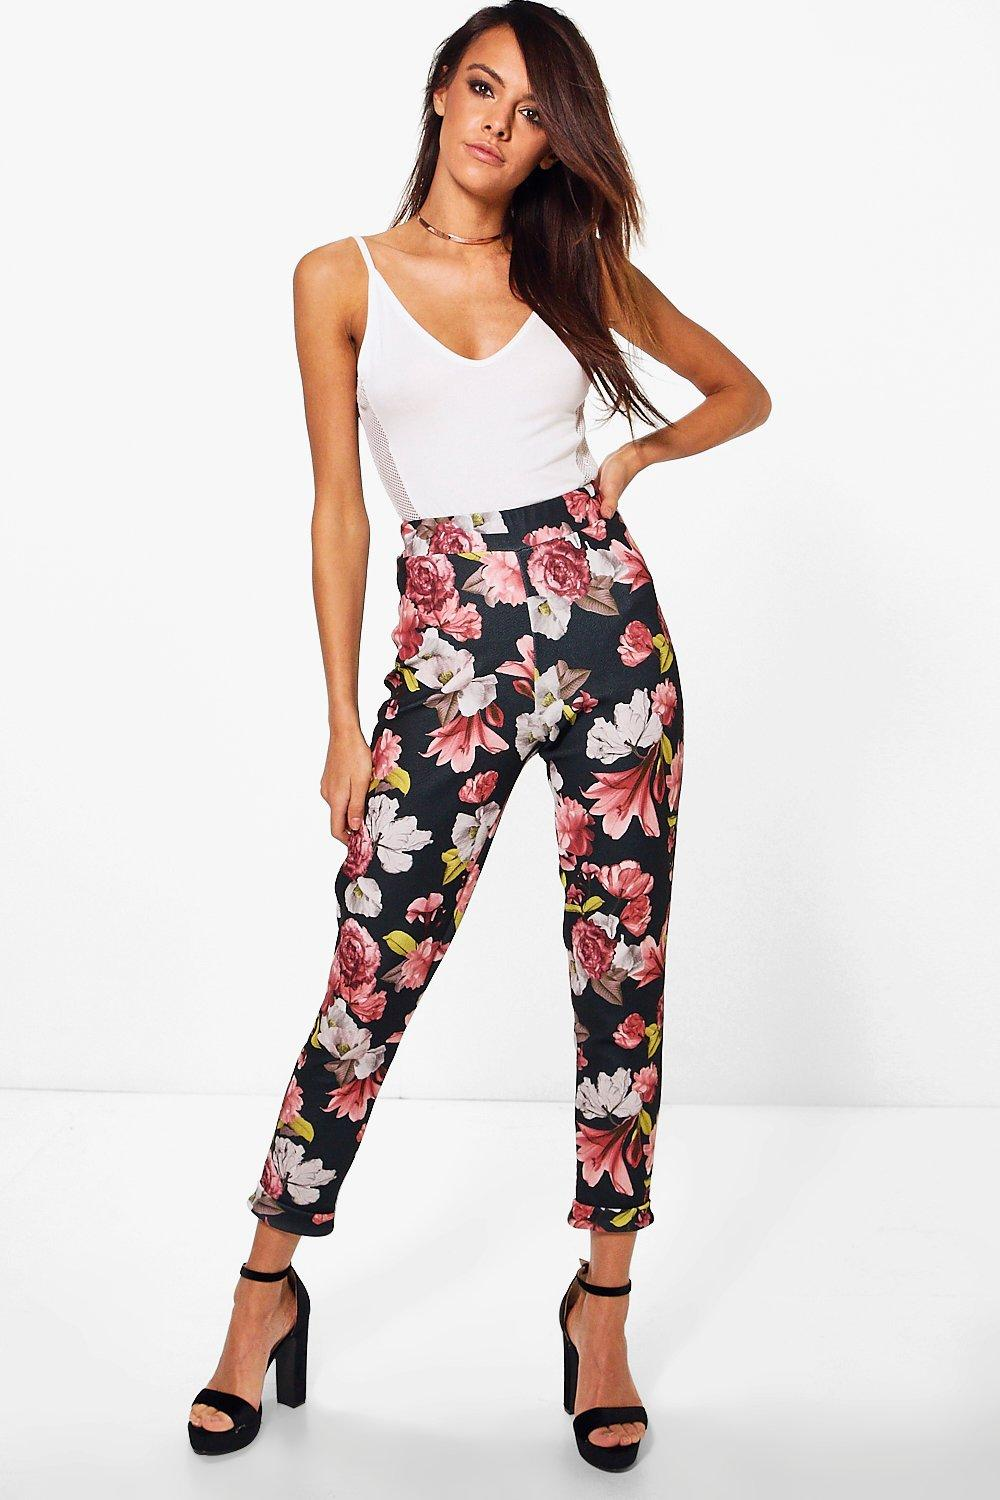 Lottie Winter Floral Skinny Stretch Trousers